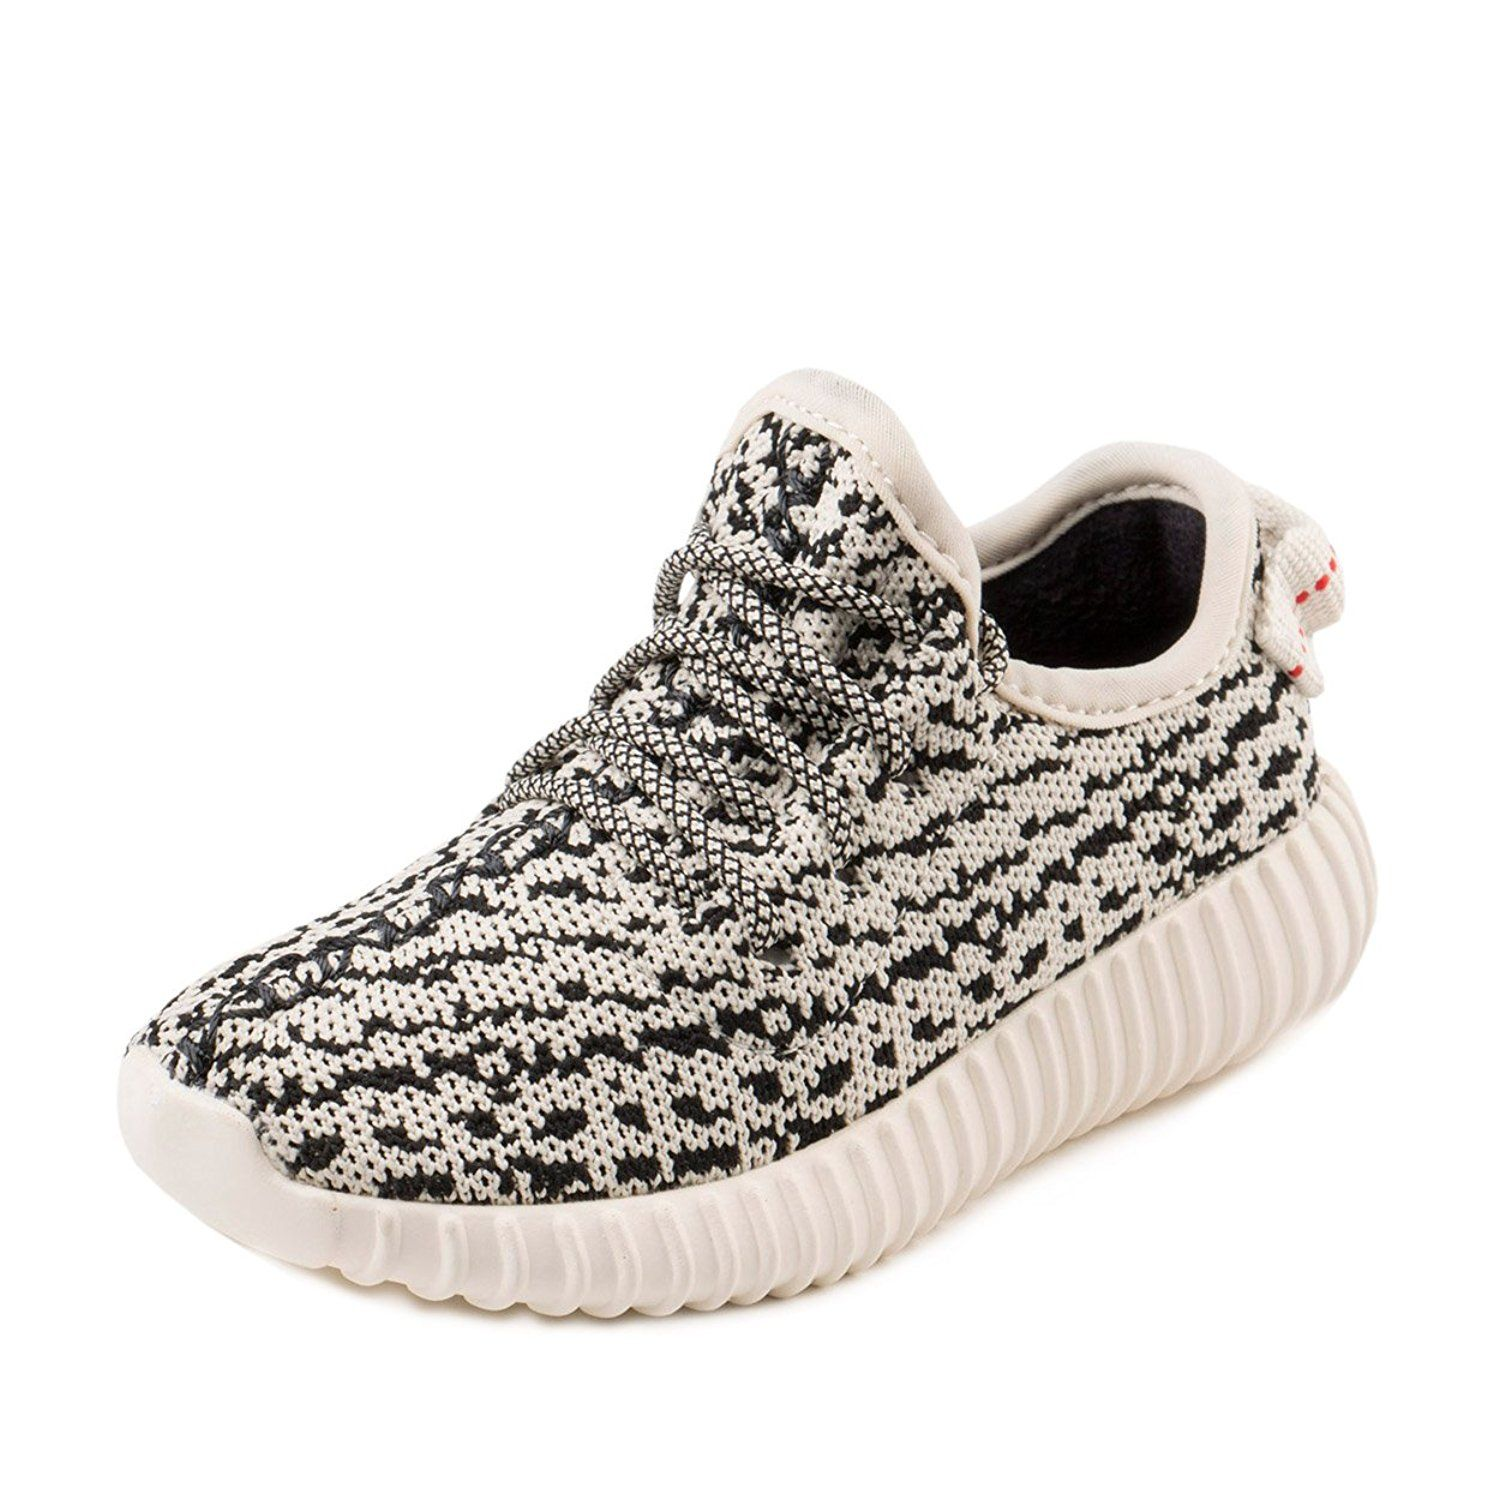 Buy Adidas Baby Boys Yeezy Boost 350 Infant